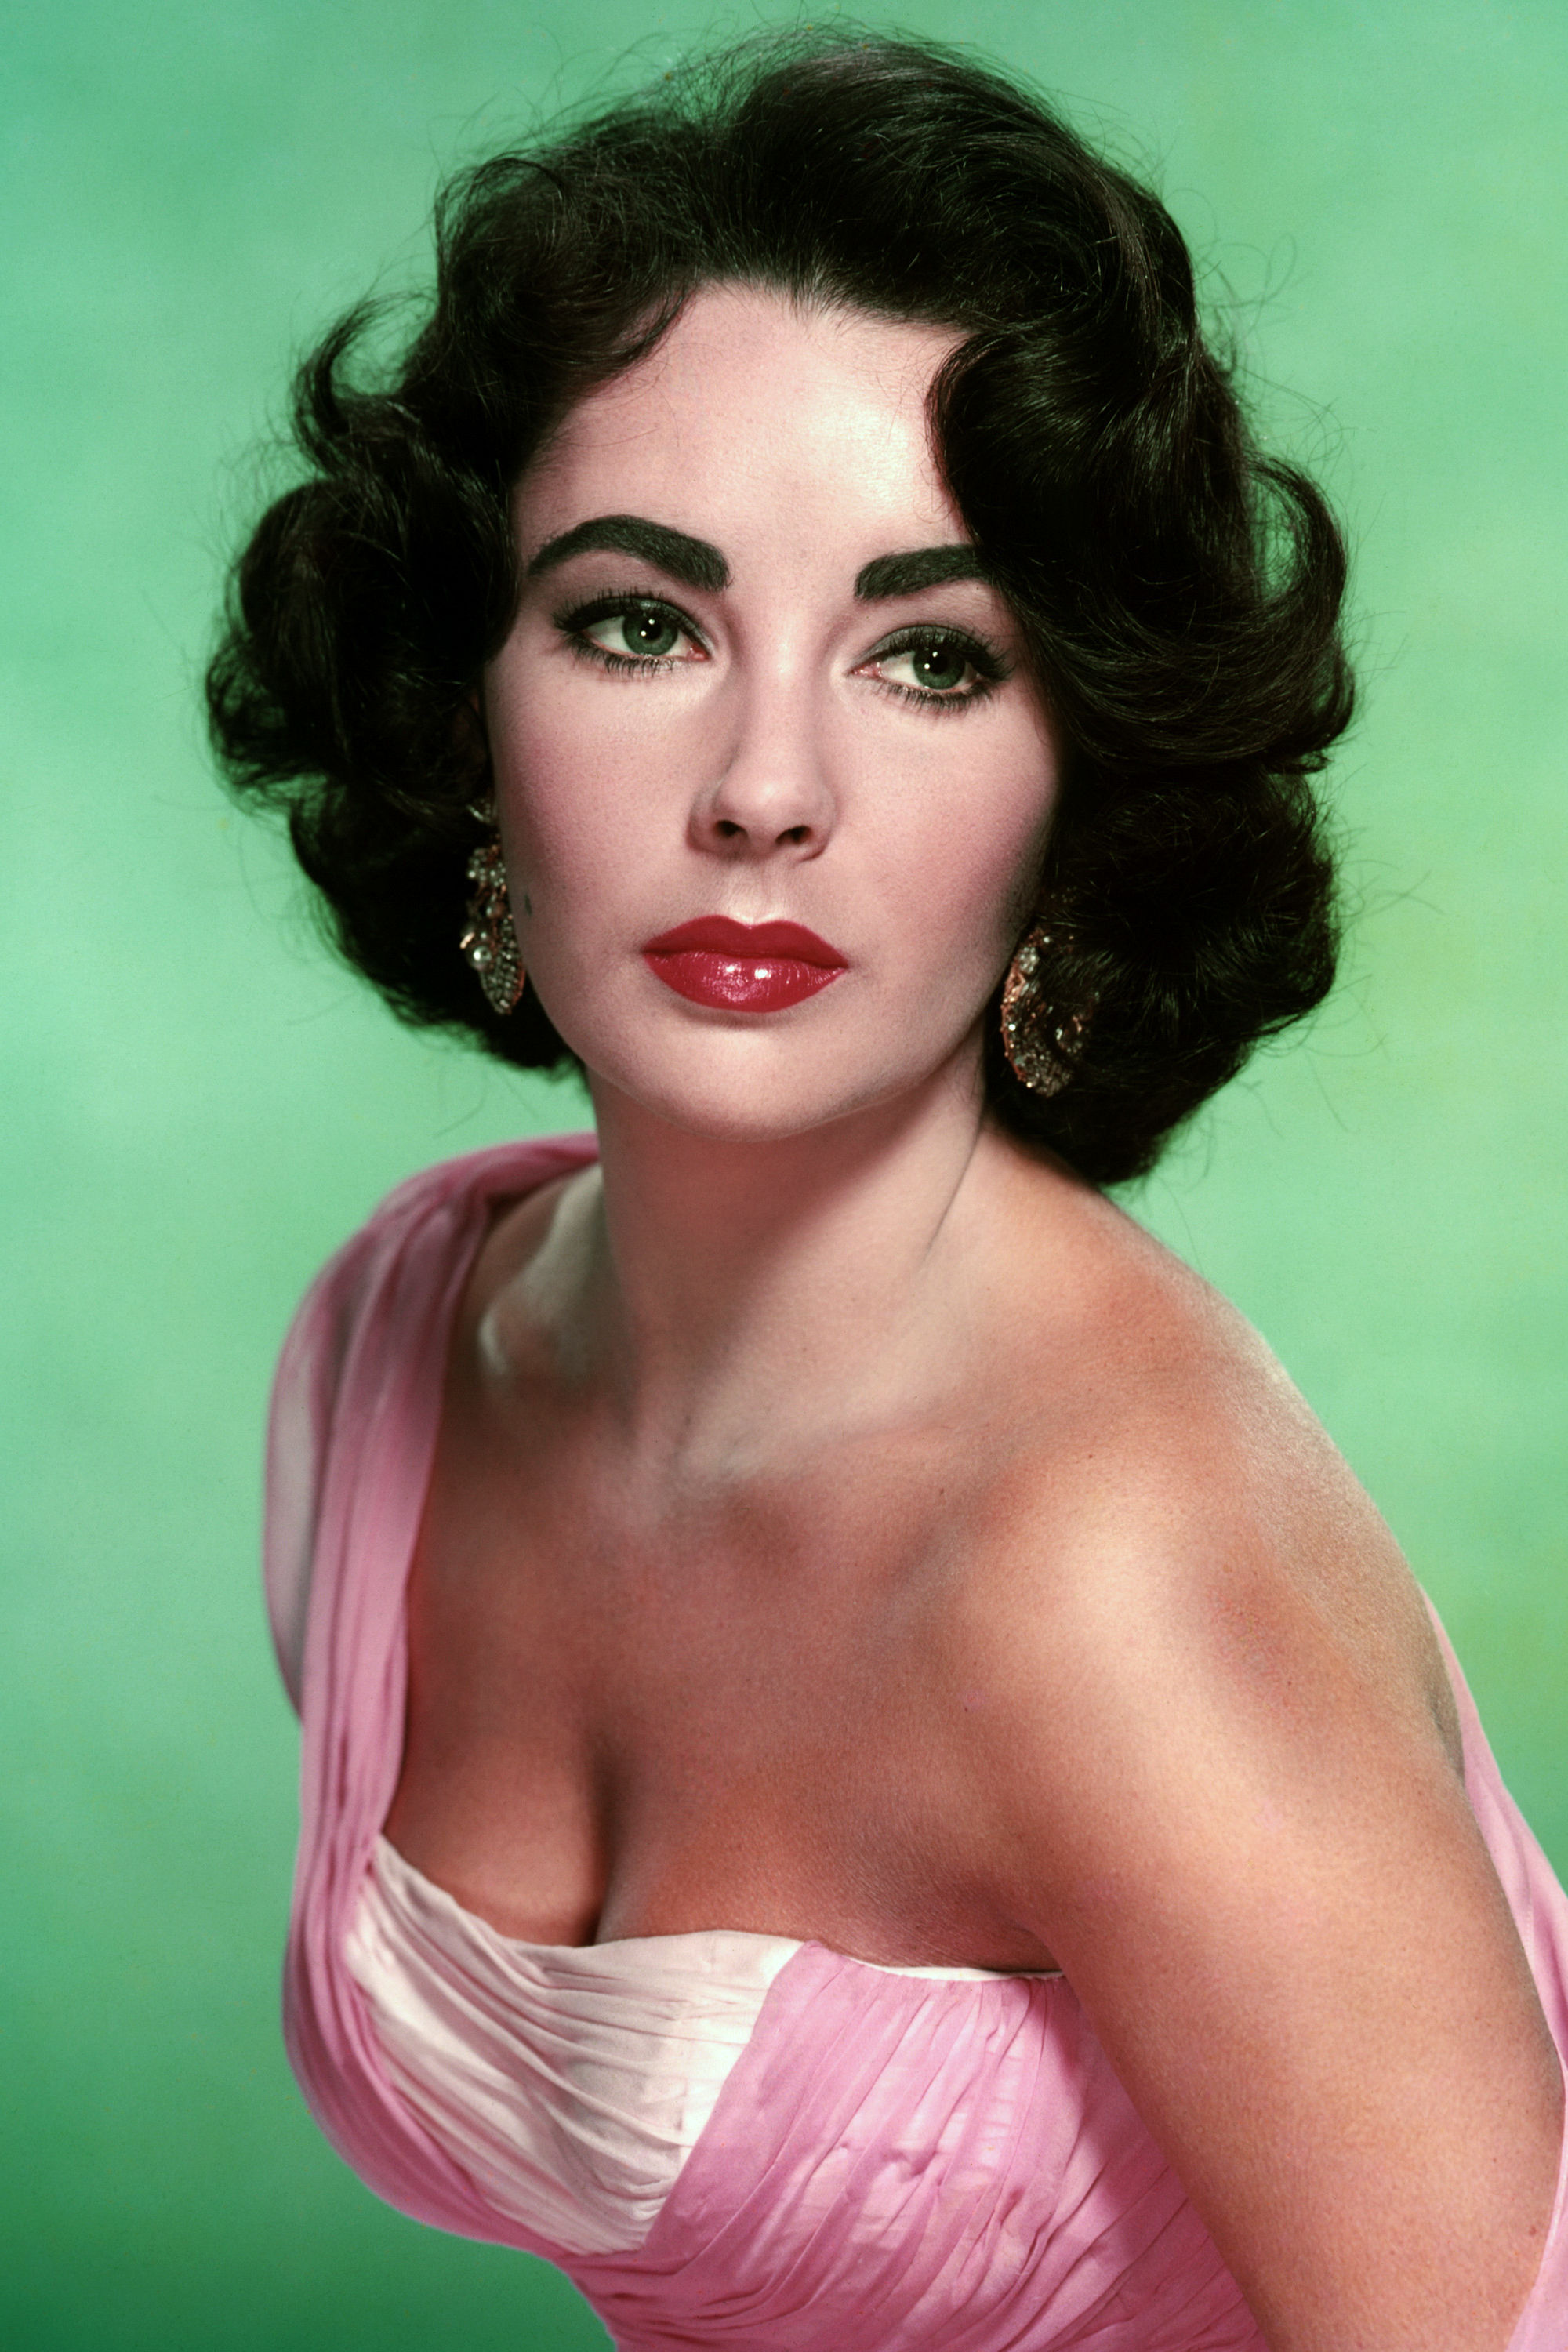 The Timeless Beauty Tips Elizabeth Taylor Passed Down to Her Granddaughter